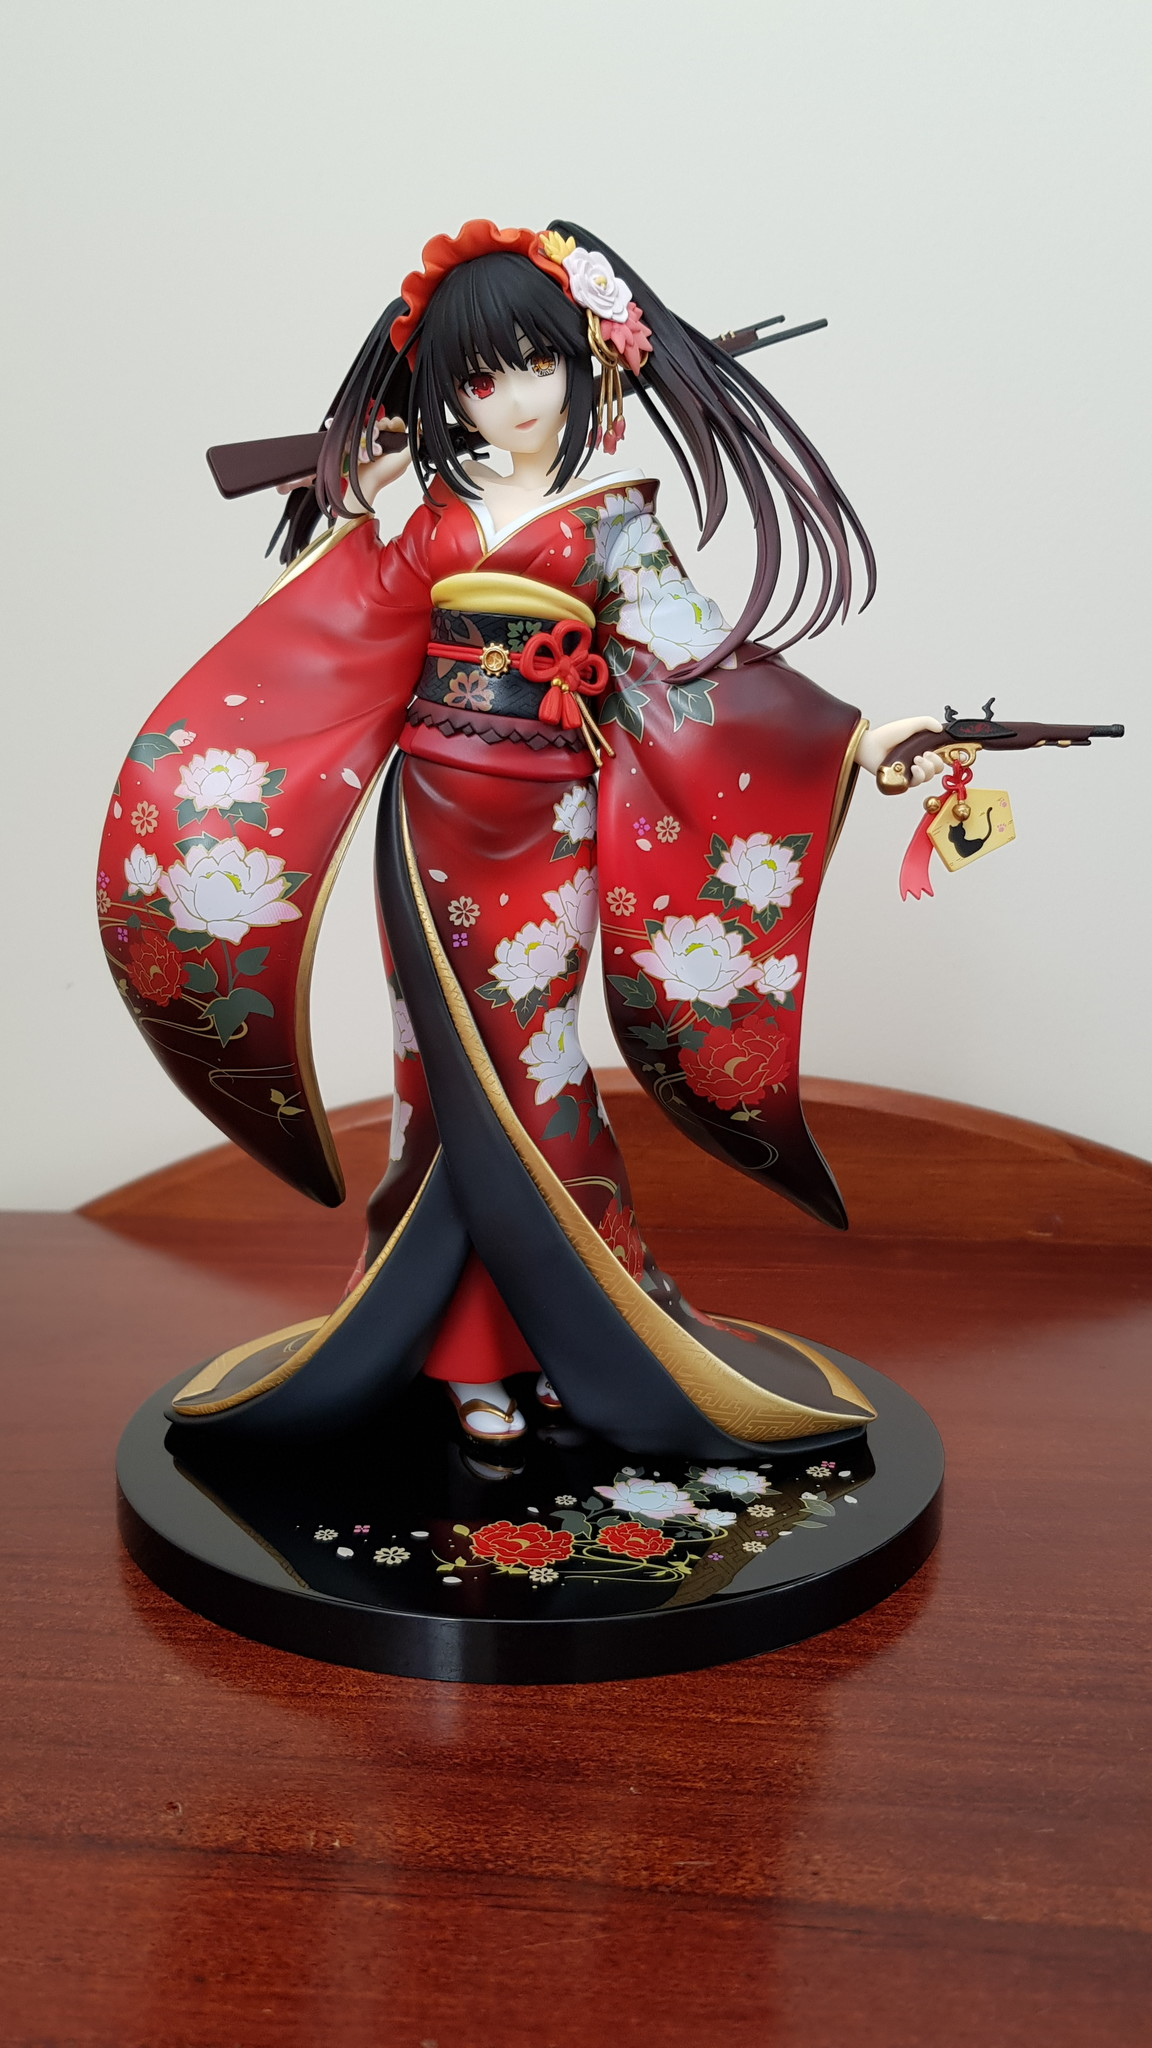 https://static.myfigurecollection.net/upload/pictures/2020/07/03/2467136.jpeg